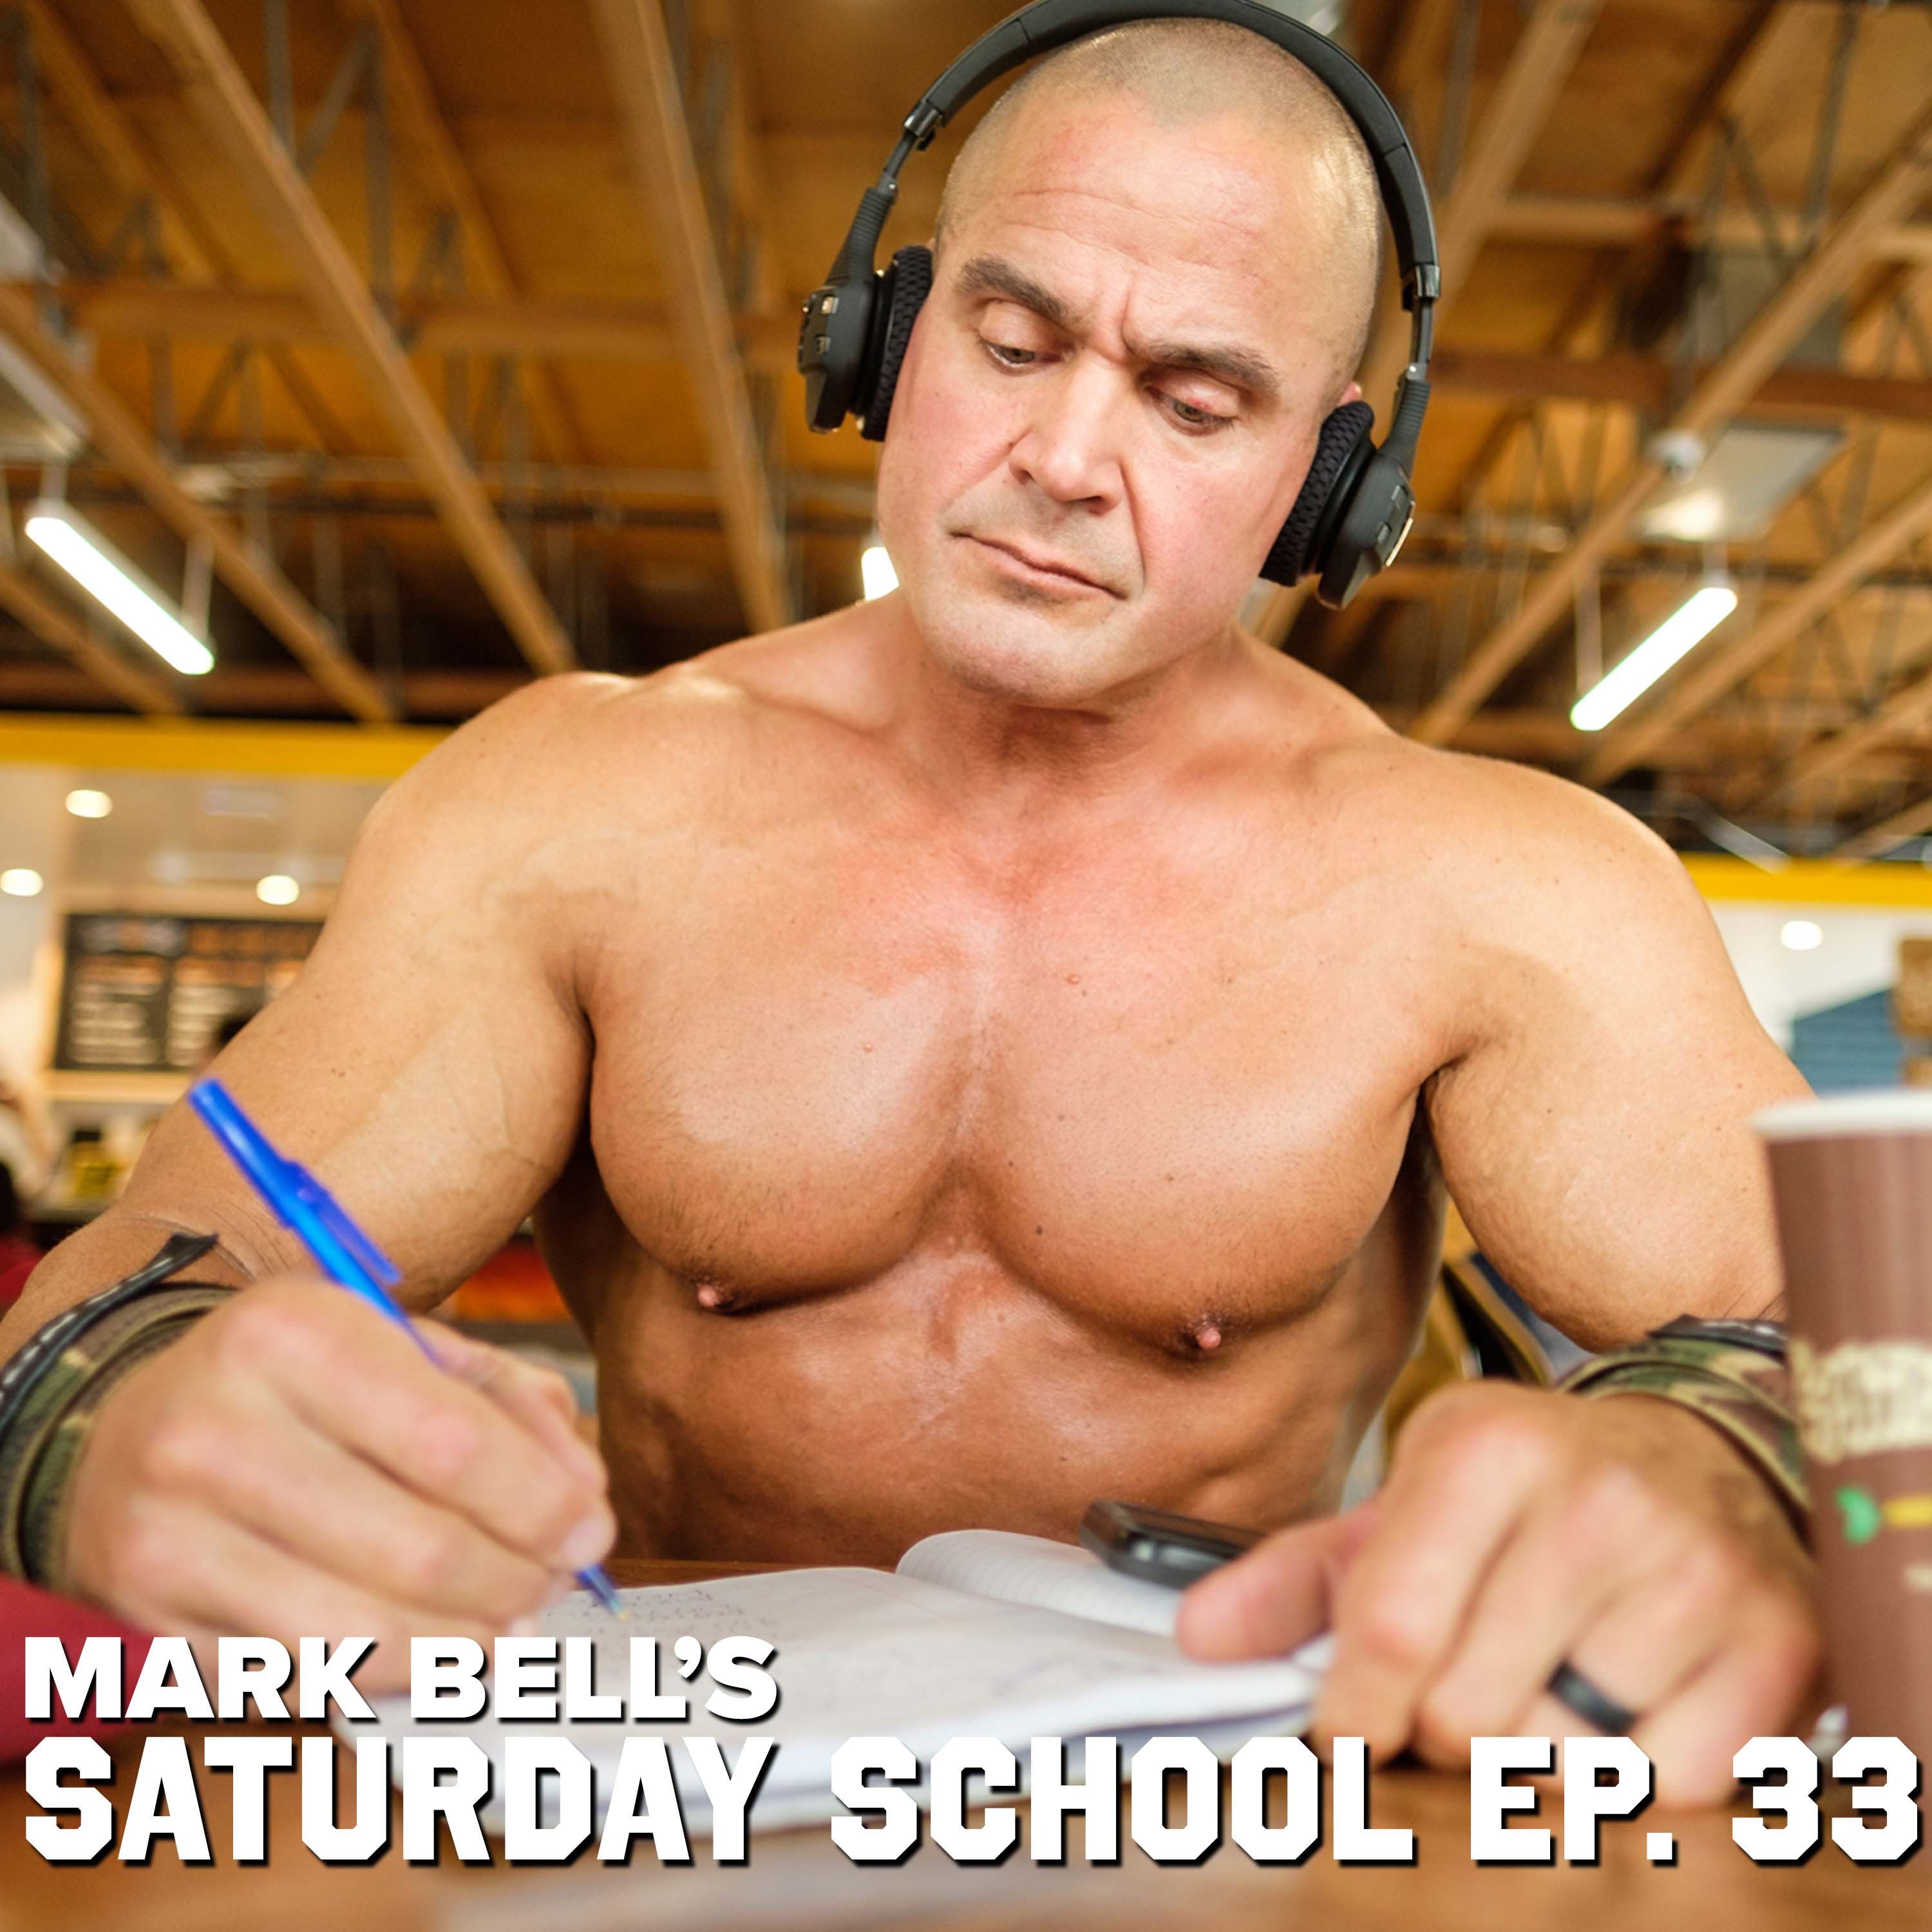 Mark Bell's Saturday School EP. 33 - Reasonable Road Map To Losing Weight